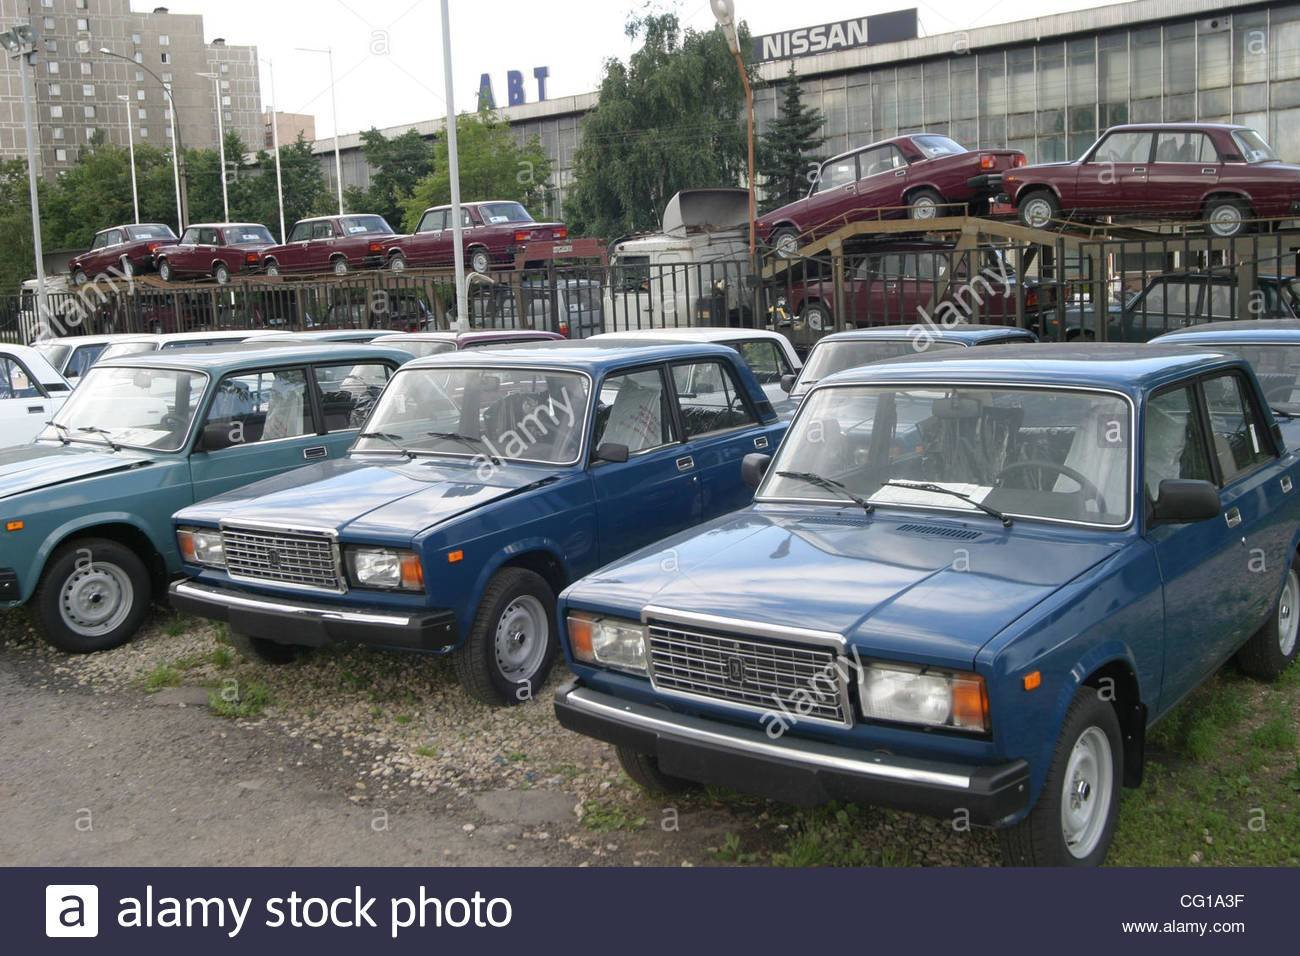 New Sale Of Russian Made Lada Cars Made By Avtovaz Car Maker On This Month